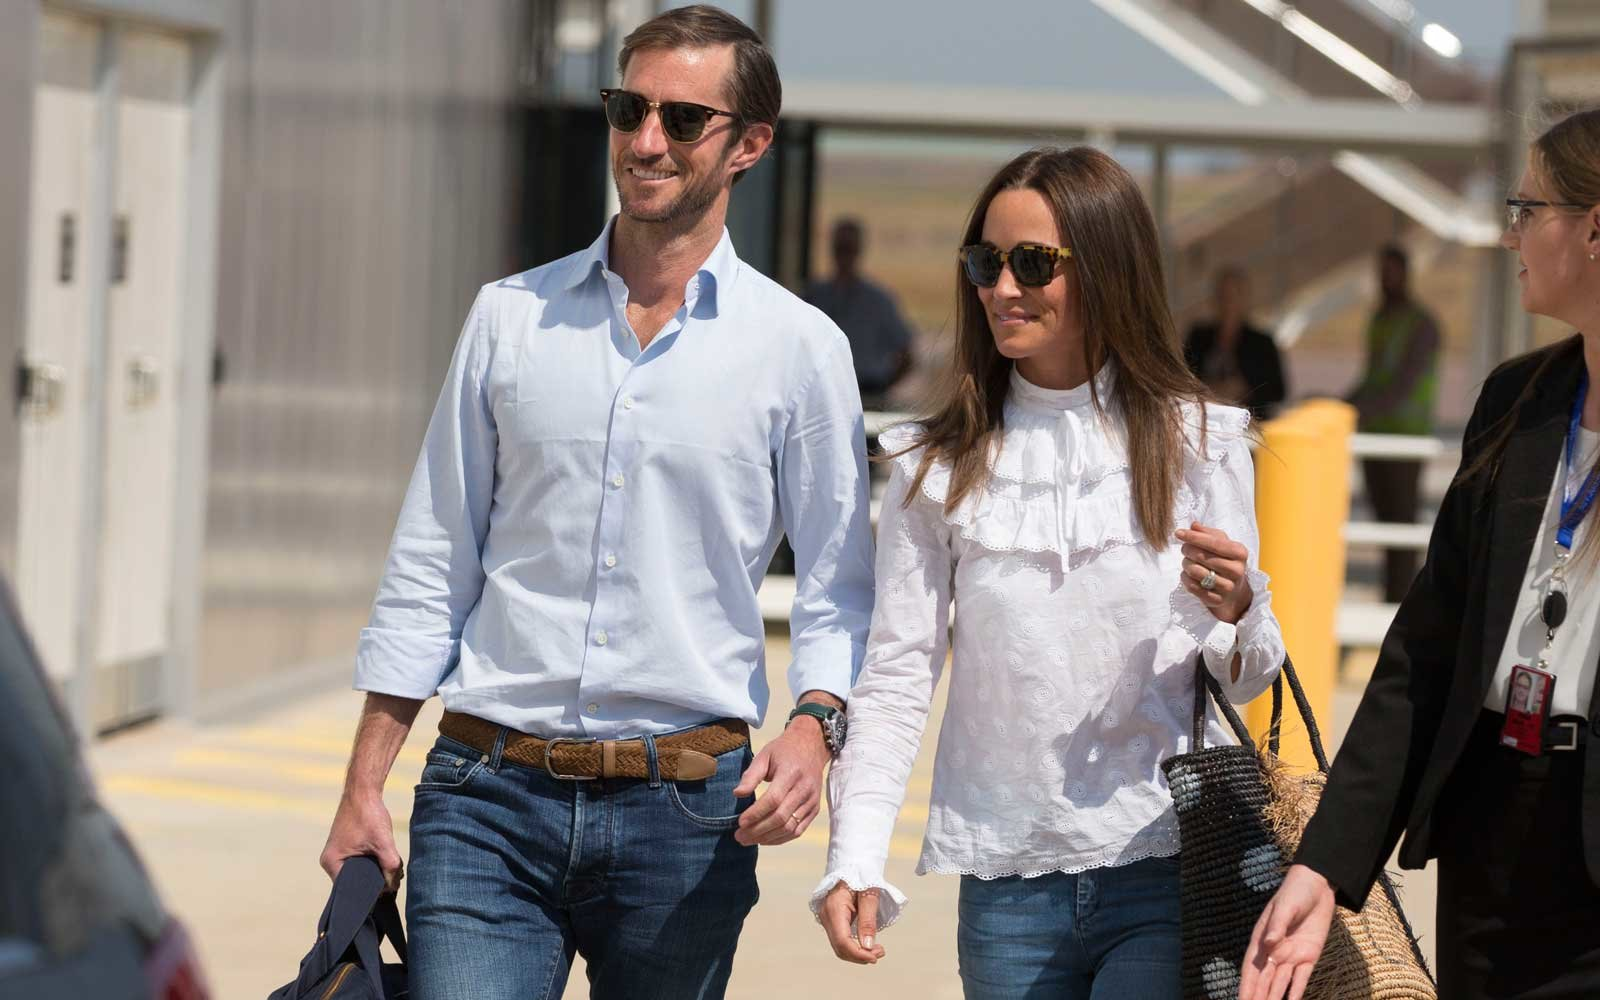 Newly married James Matthews and Pippa Middleton arrive into Darwin International Airport in Darwin, Northern Territory